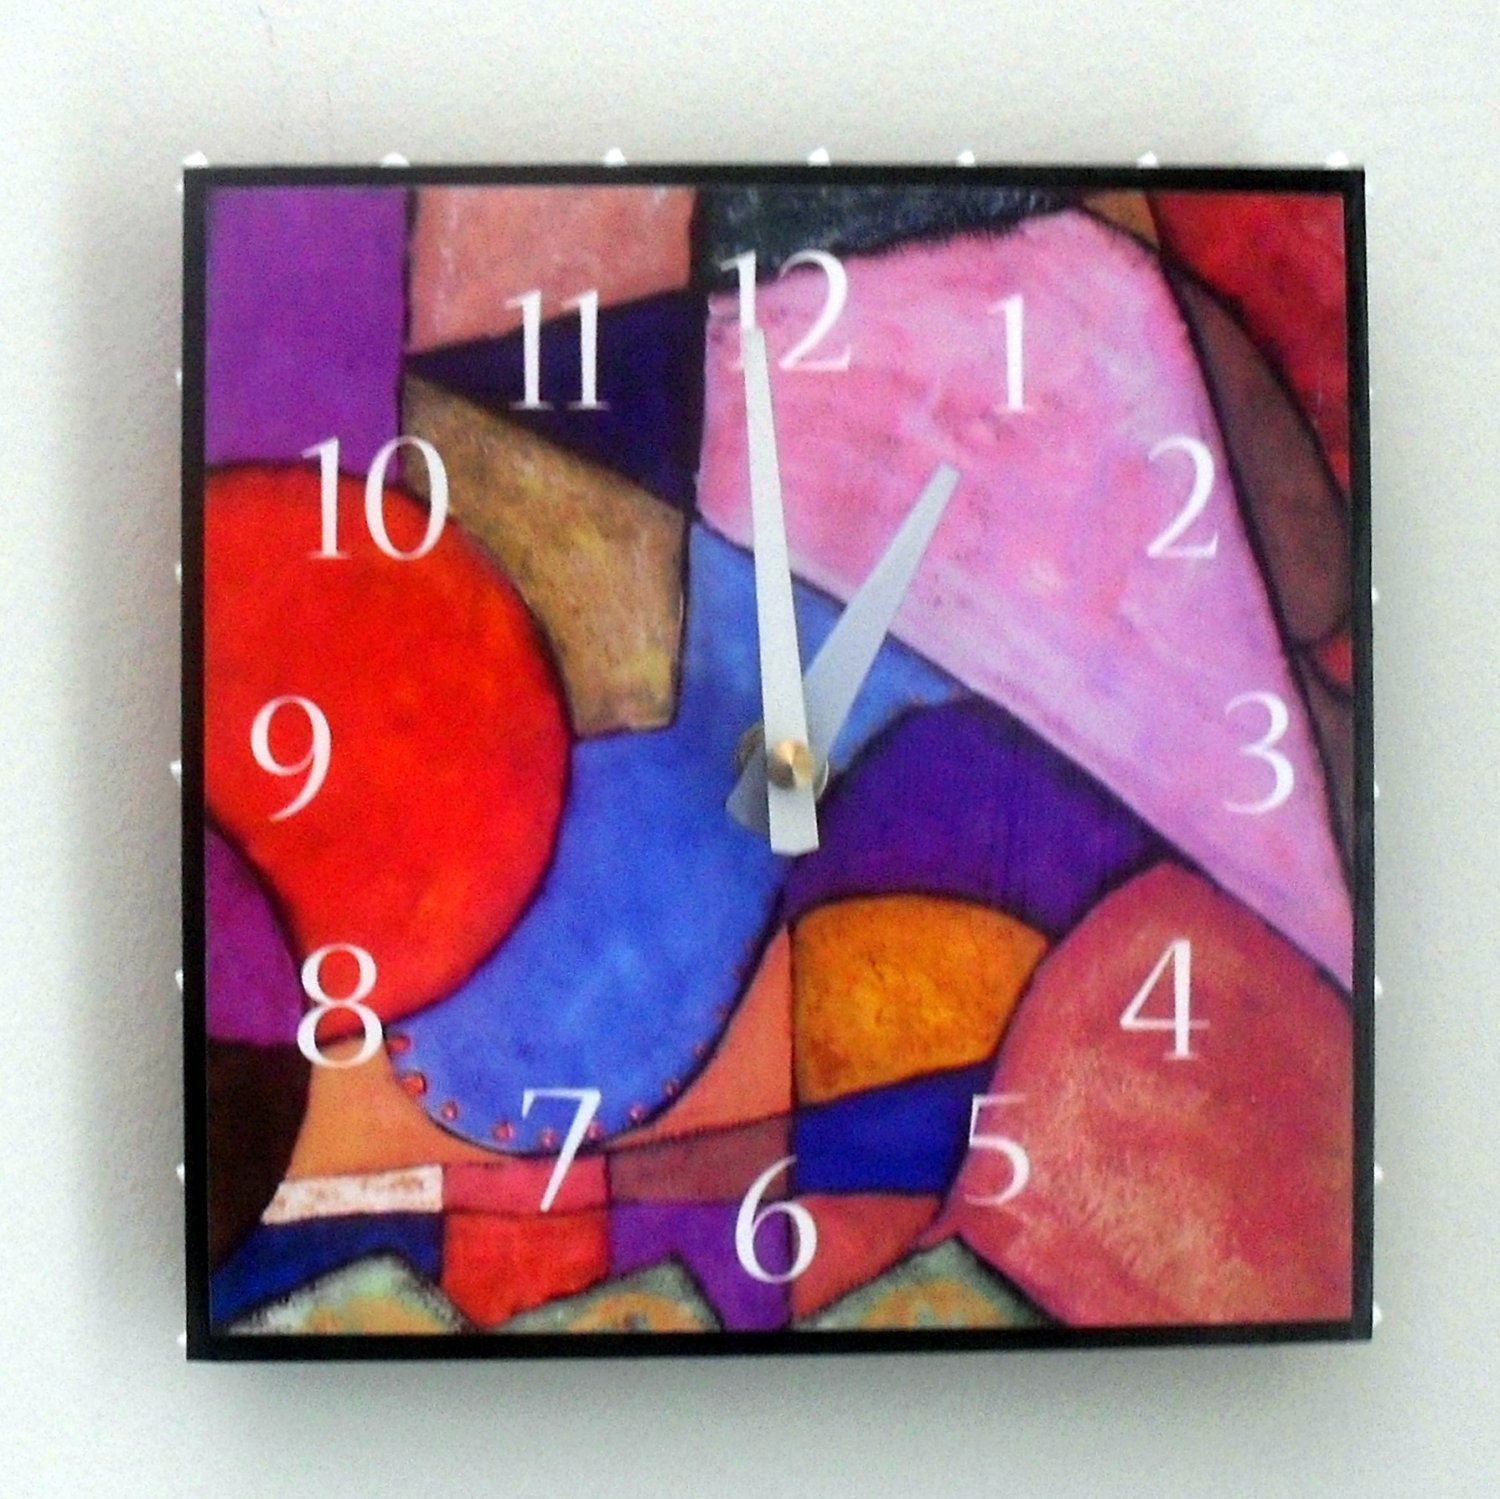 Abstract Geometric Shape Clock, Functional Art, Colorful Clock, Artistic, Triangle, 6 x 6 inches square - MechelleDesigns